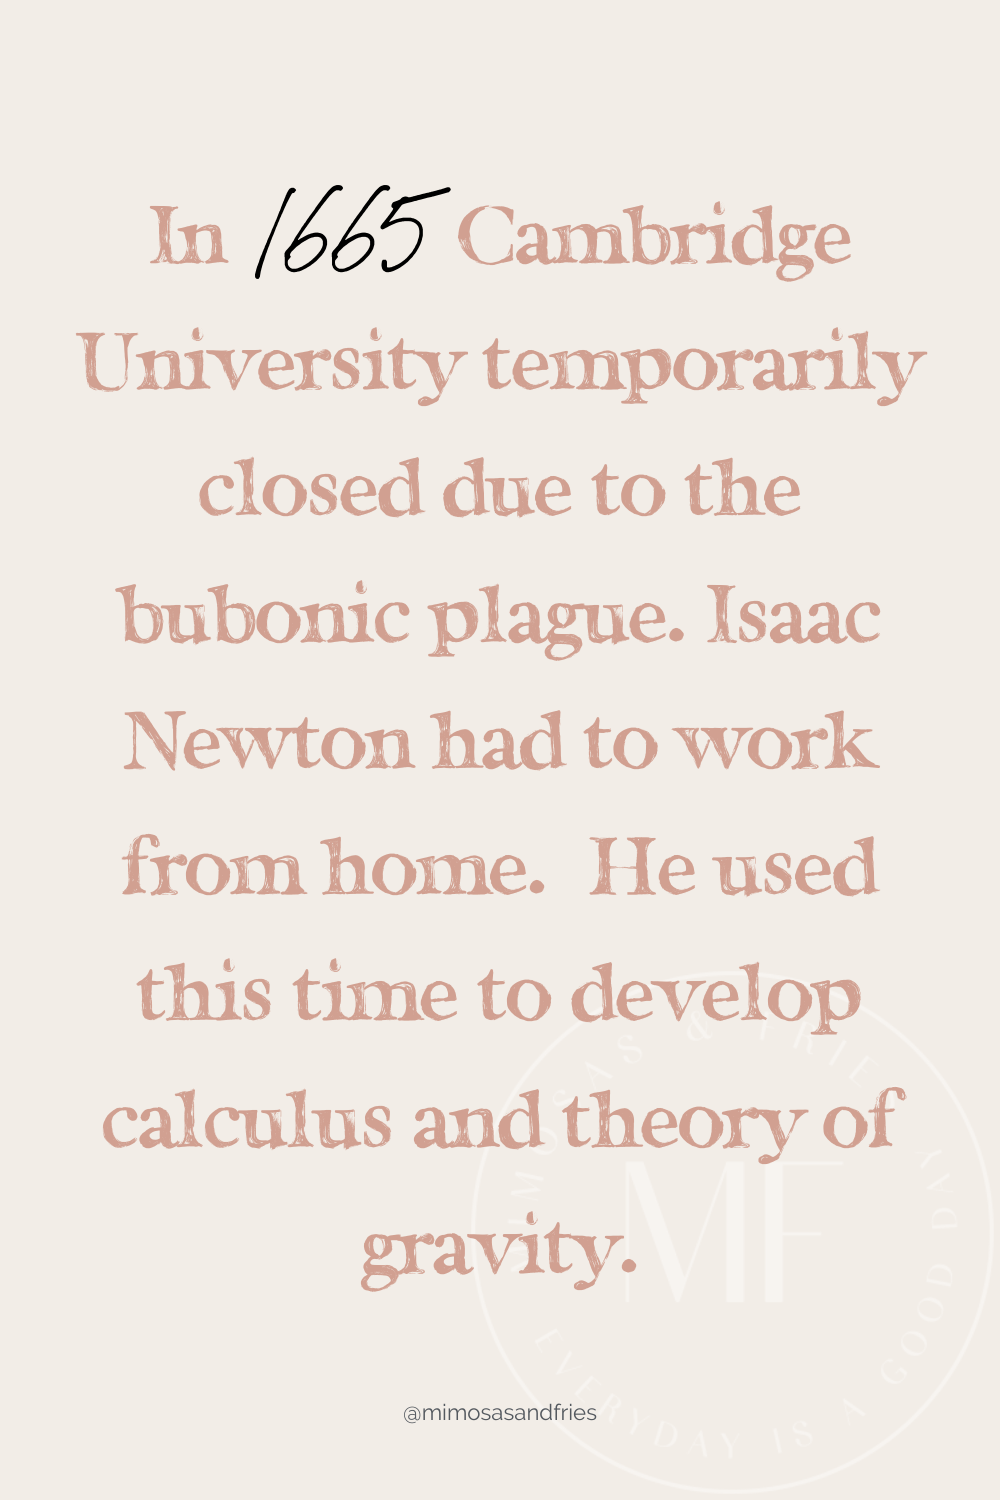 Sir Isaac Newton did his best work while being quarantined